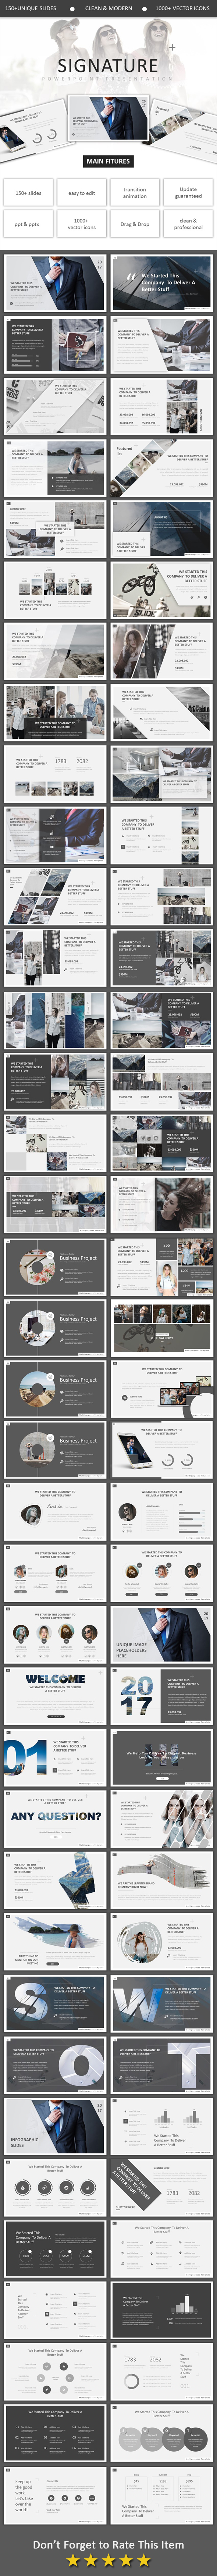 GraphicRiver Signature Powerpoint 20776645